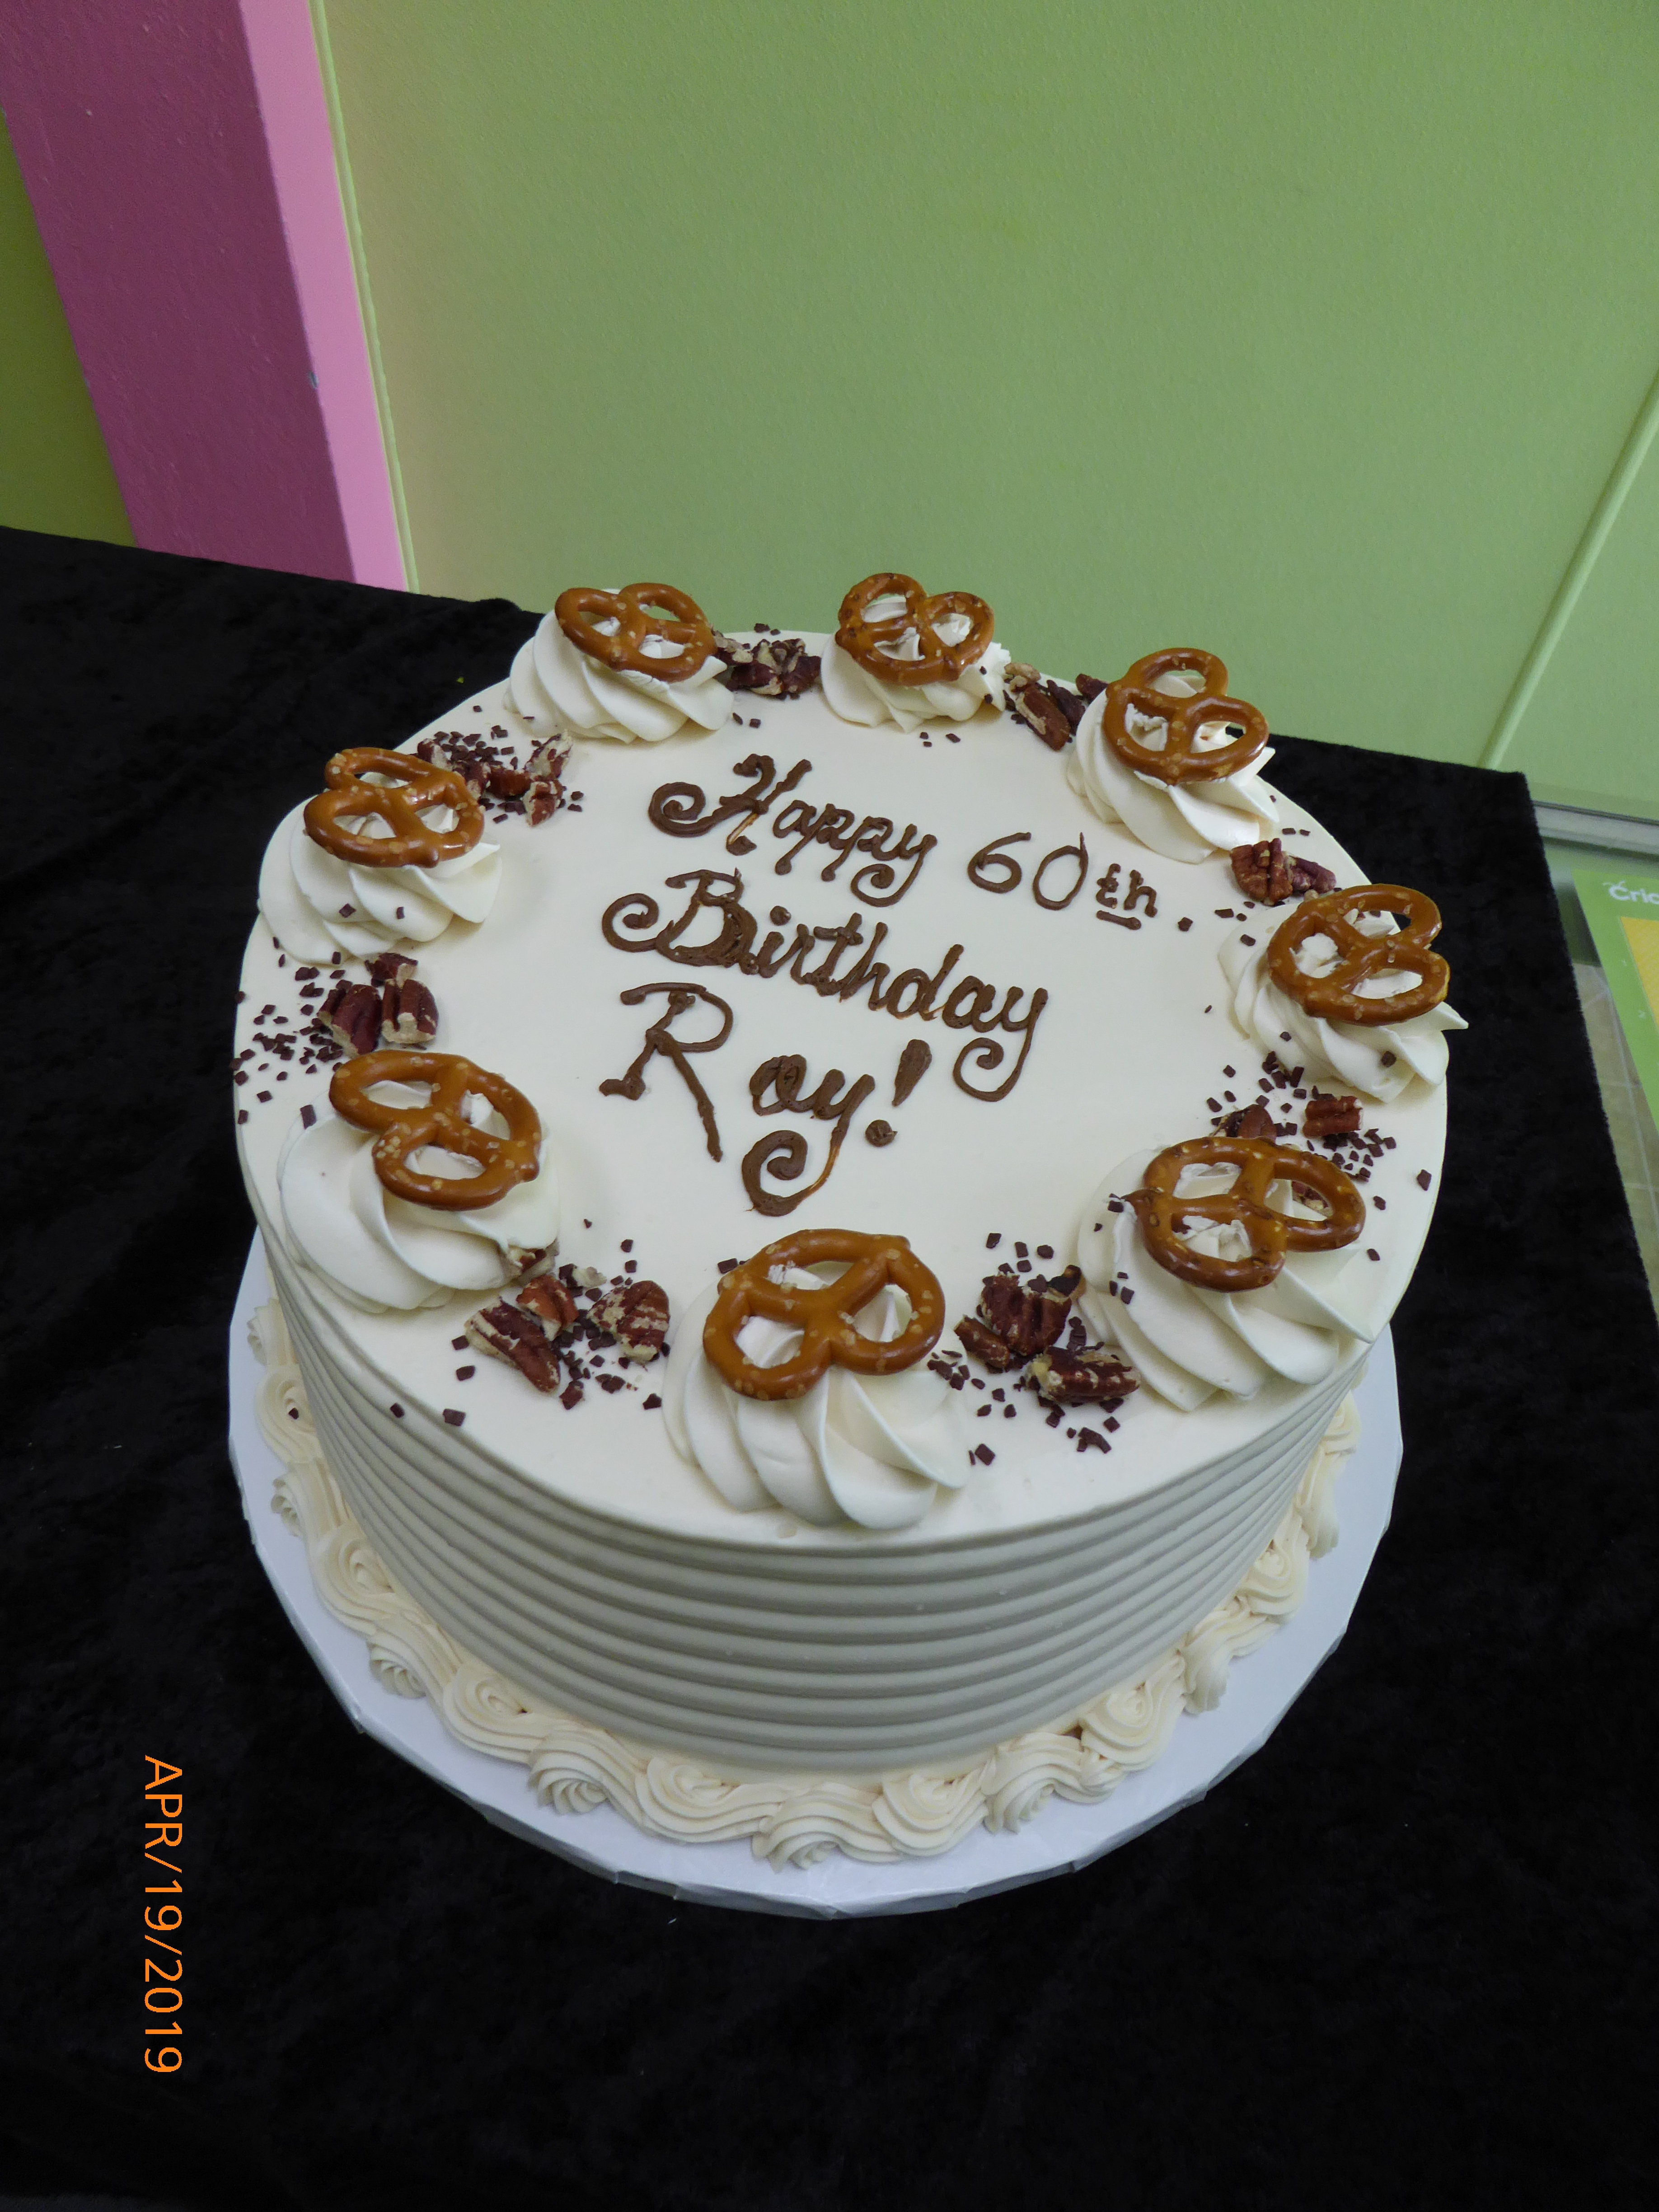 3317, 60th birthday, sixtieth birthday, pretzel, pretzels, chocolate, white, nut crunch